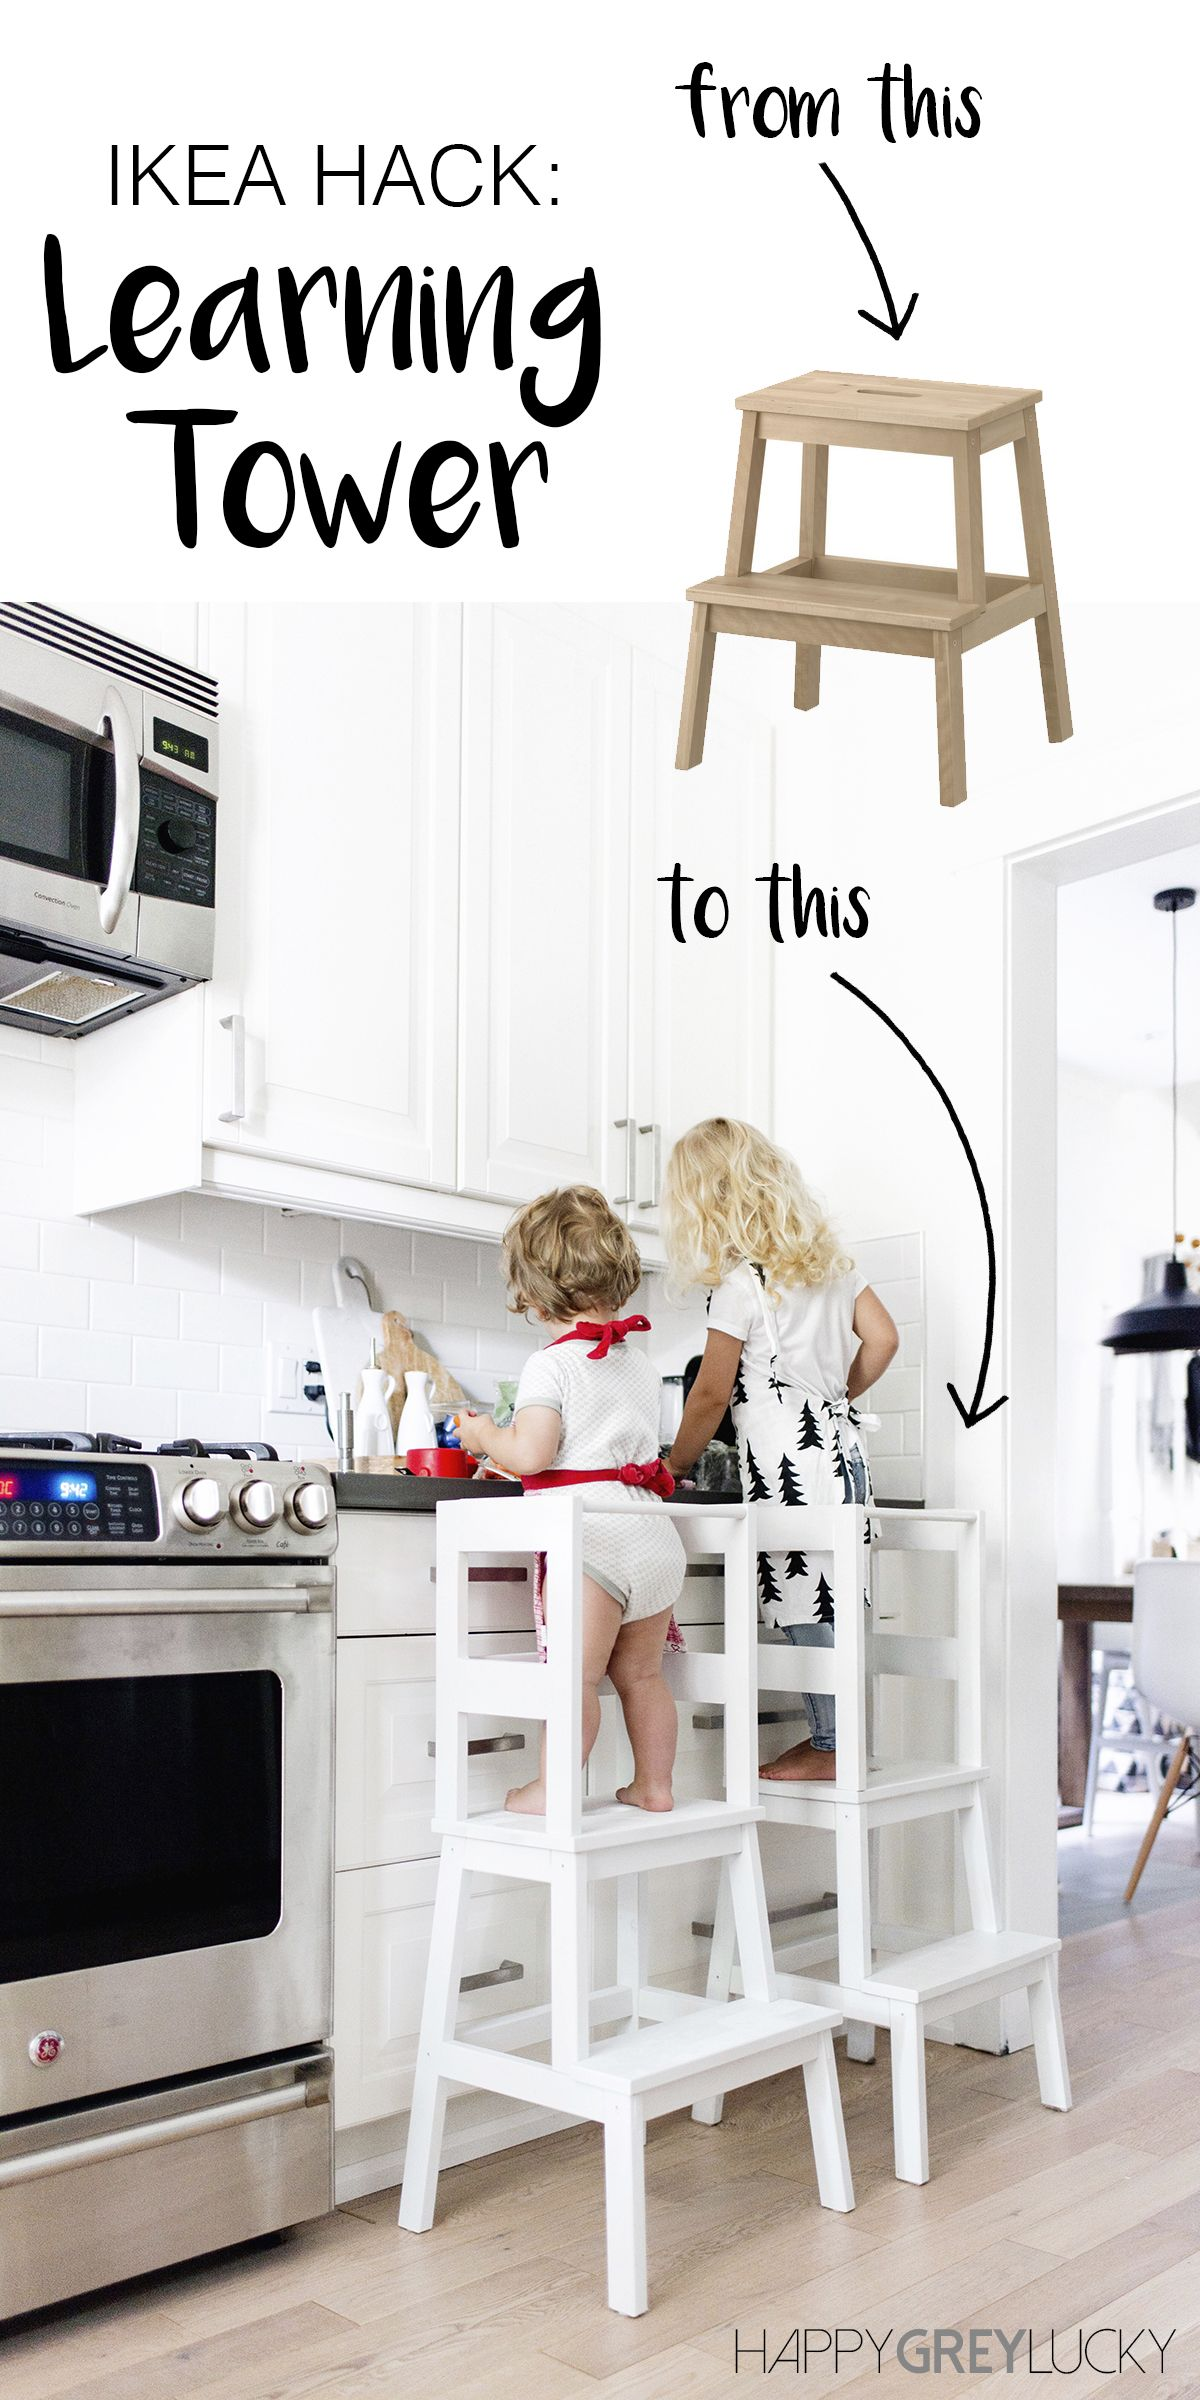 ikea kitchen step stool remodel ideas pictures hack diy learning tower using the inexpensive bekvam tutorial with loads of by instructions